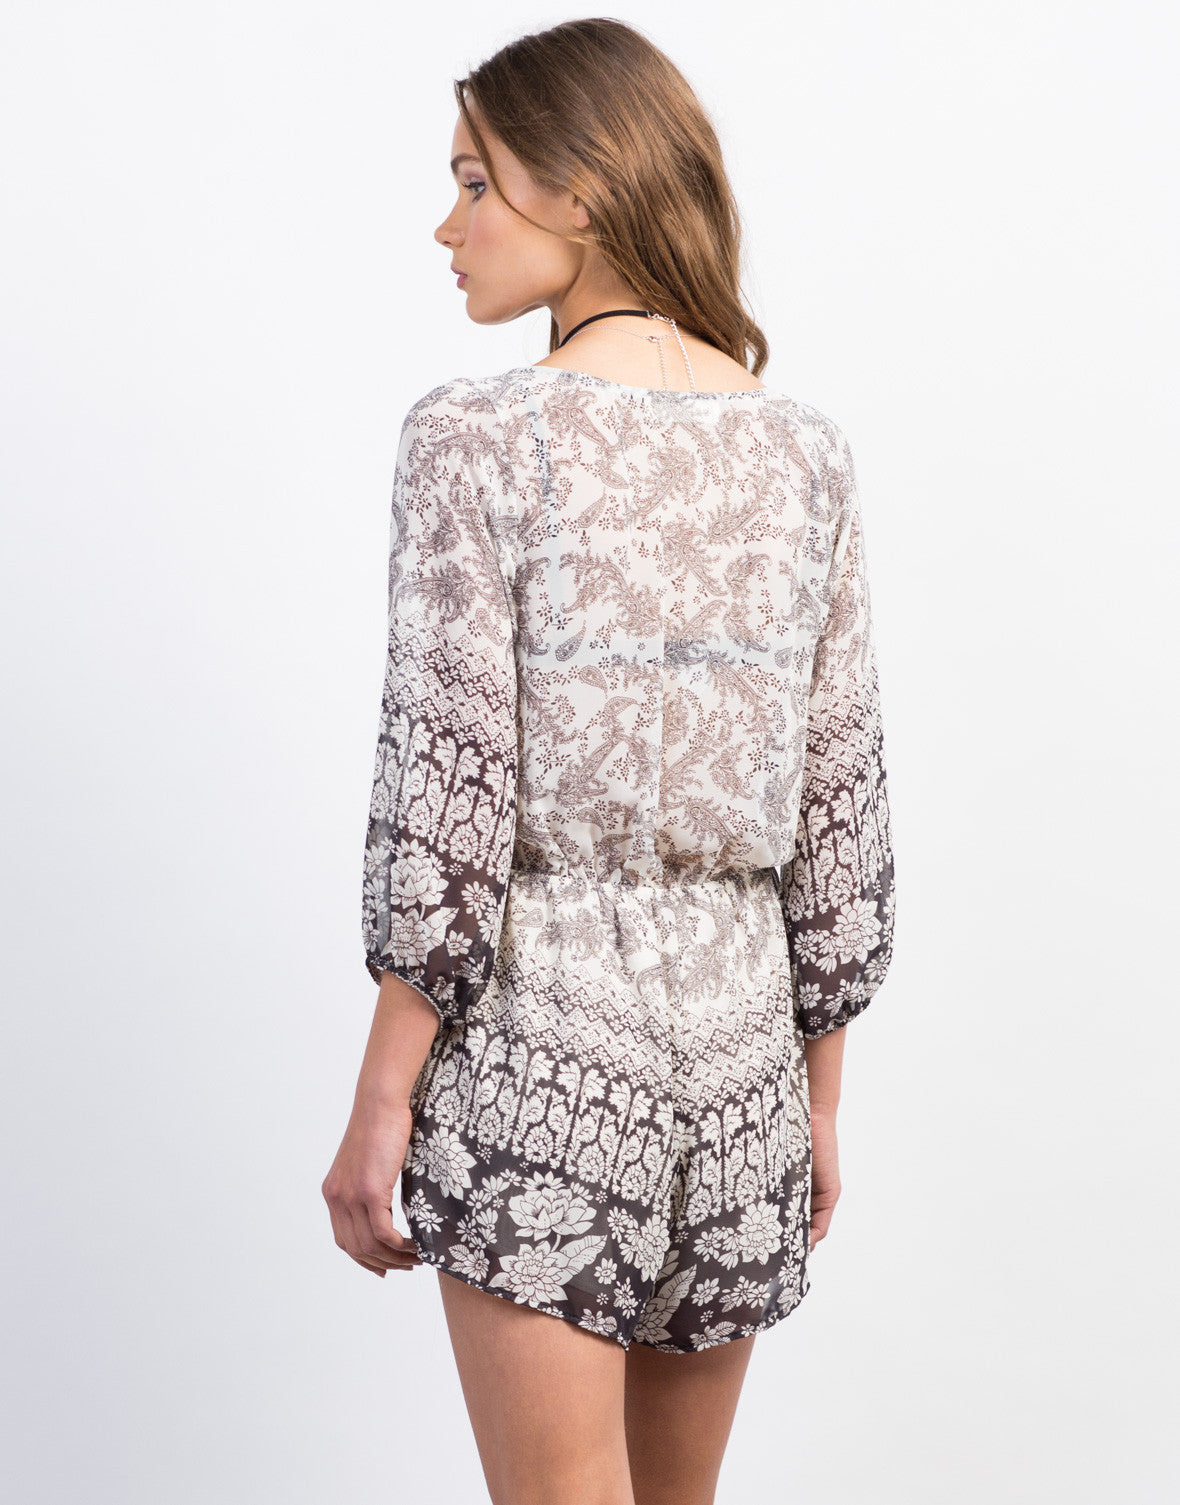 Back View of Paisley Floral Chiffon Romper